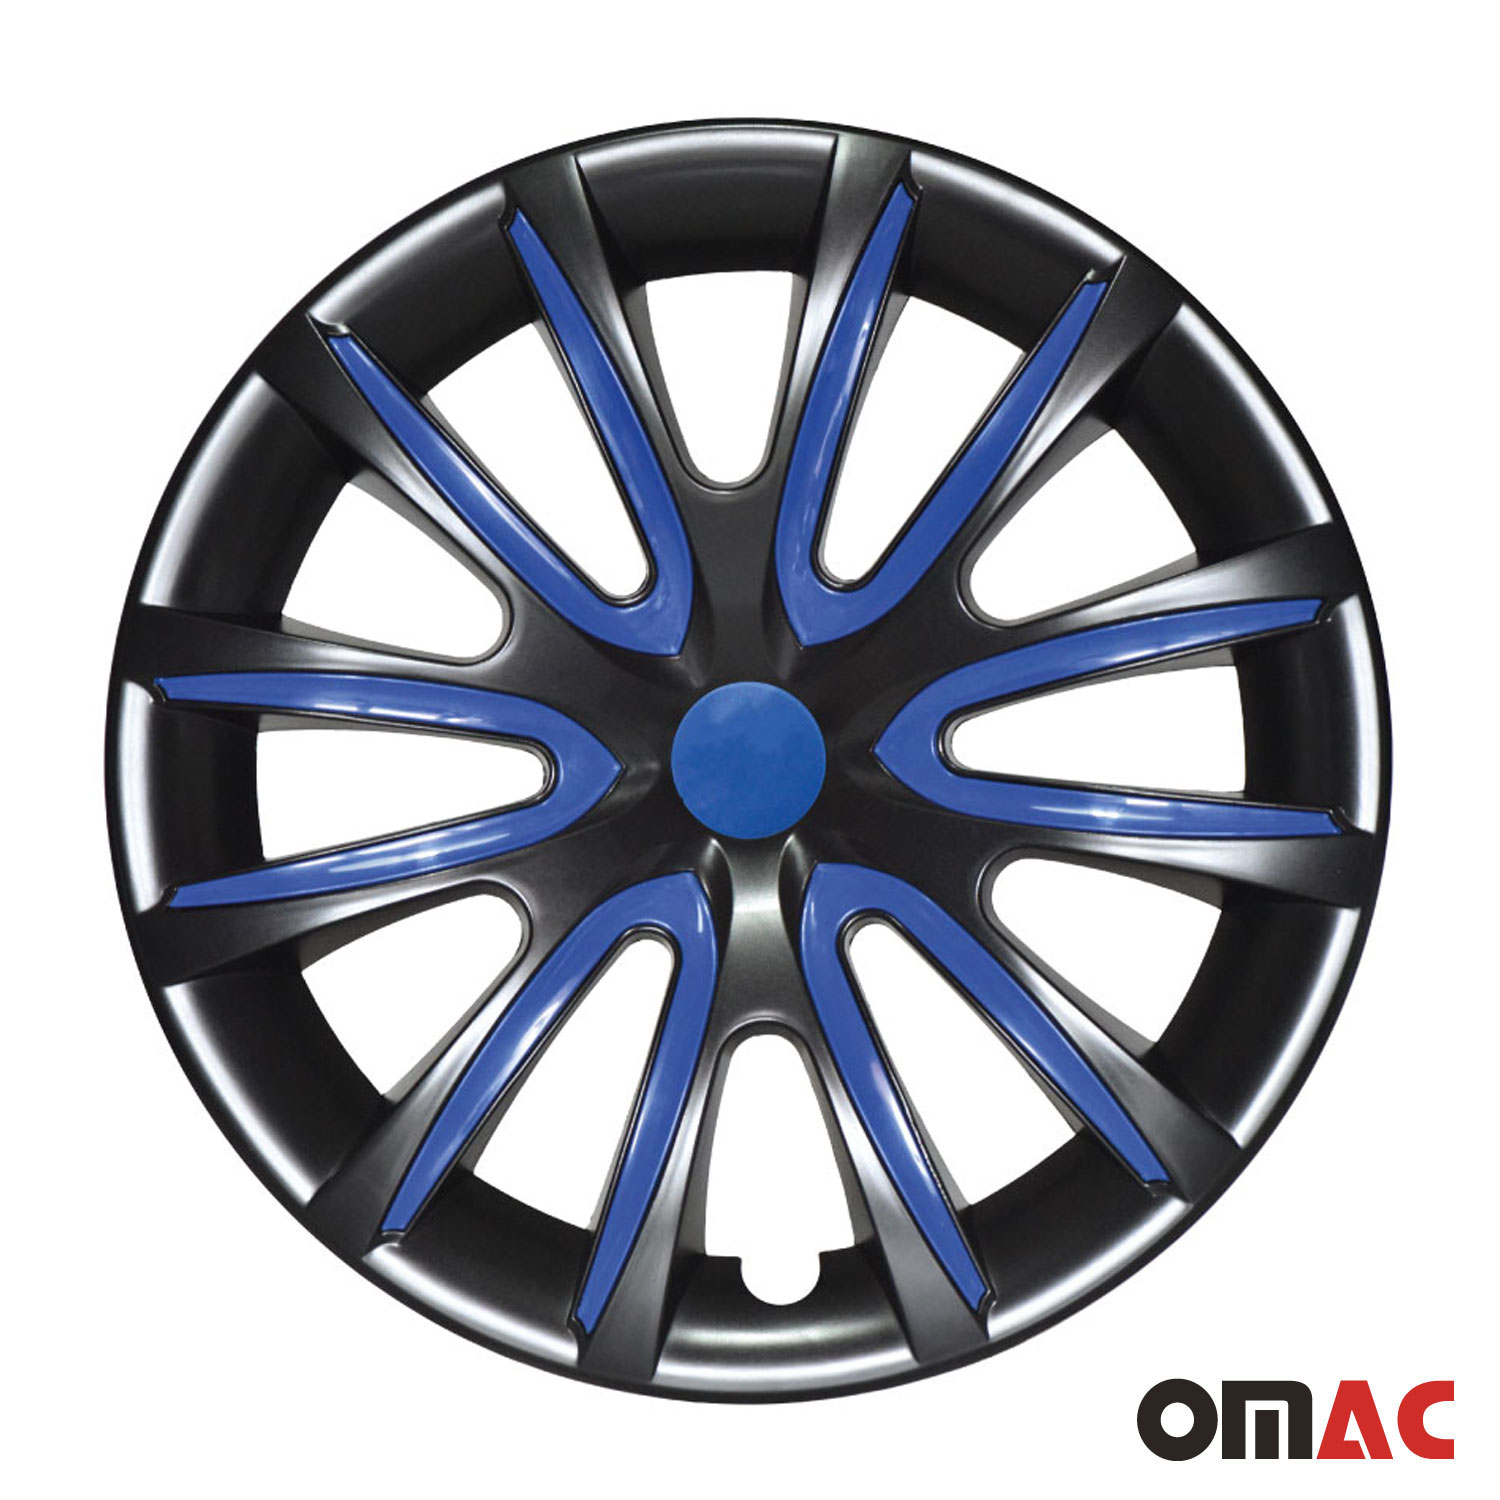 16 Inch Hubcaps Wheel Rim Cover Black Dark Blue 4pcs Set For Dodge Durango Ebay